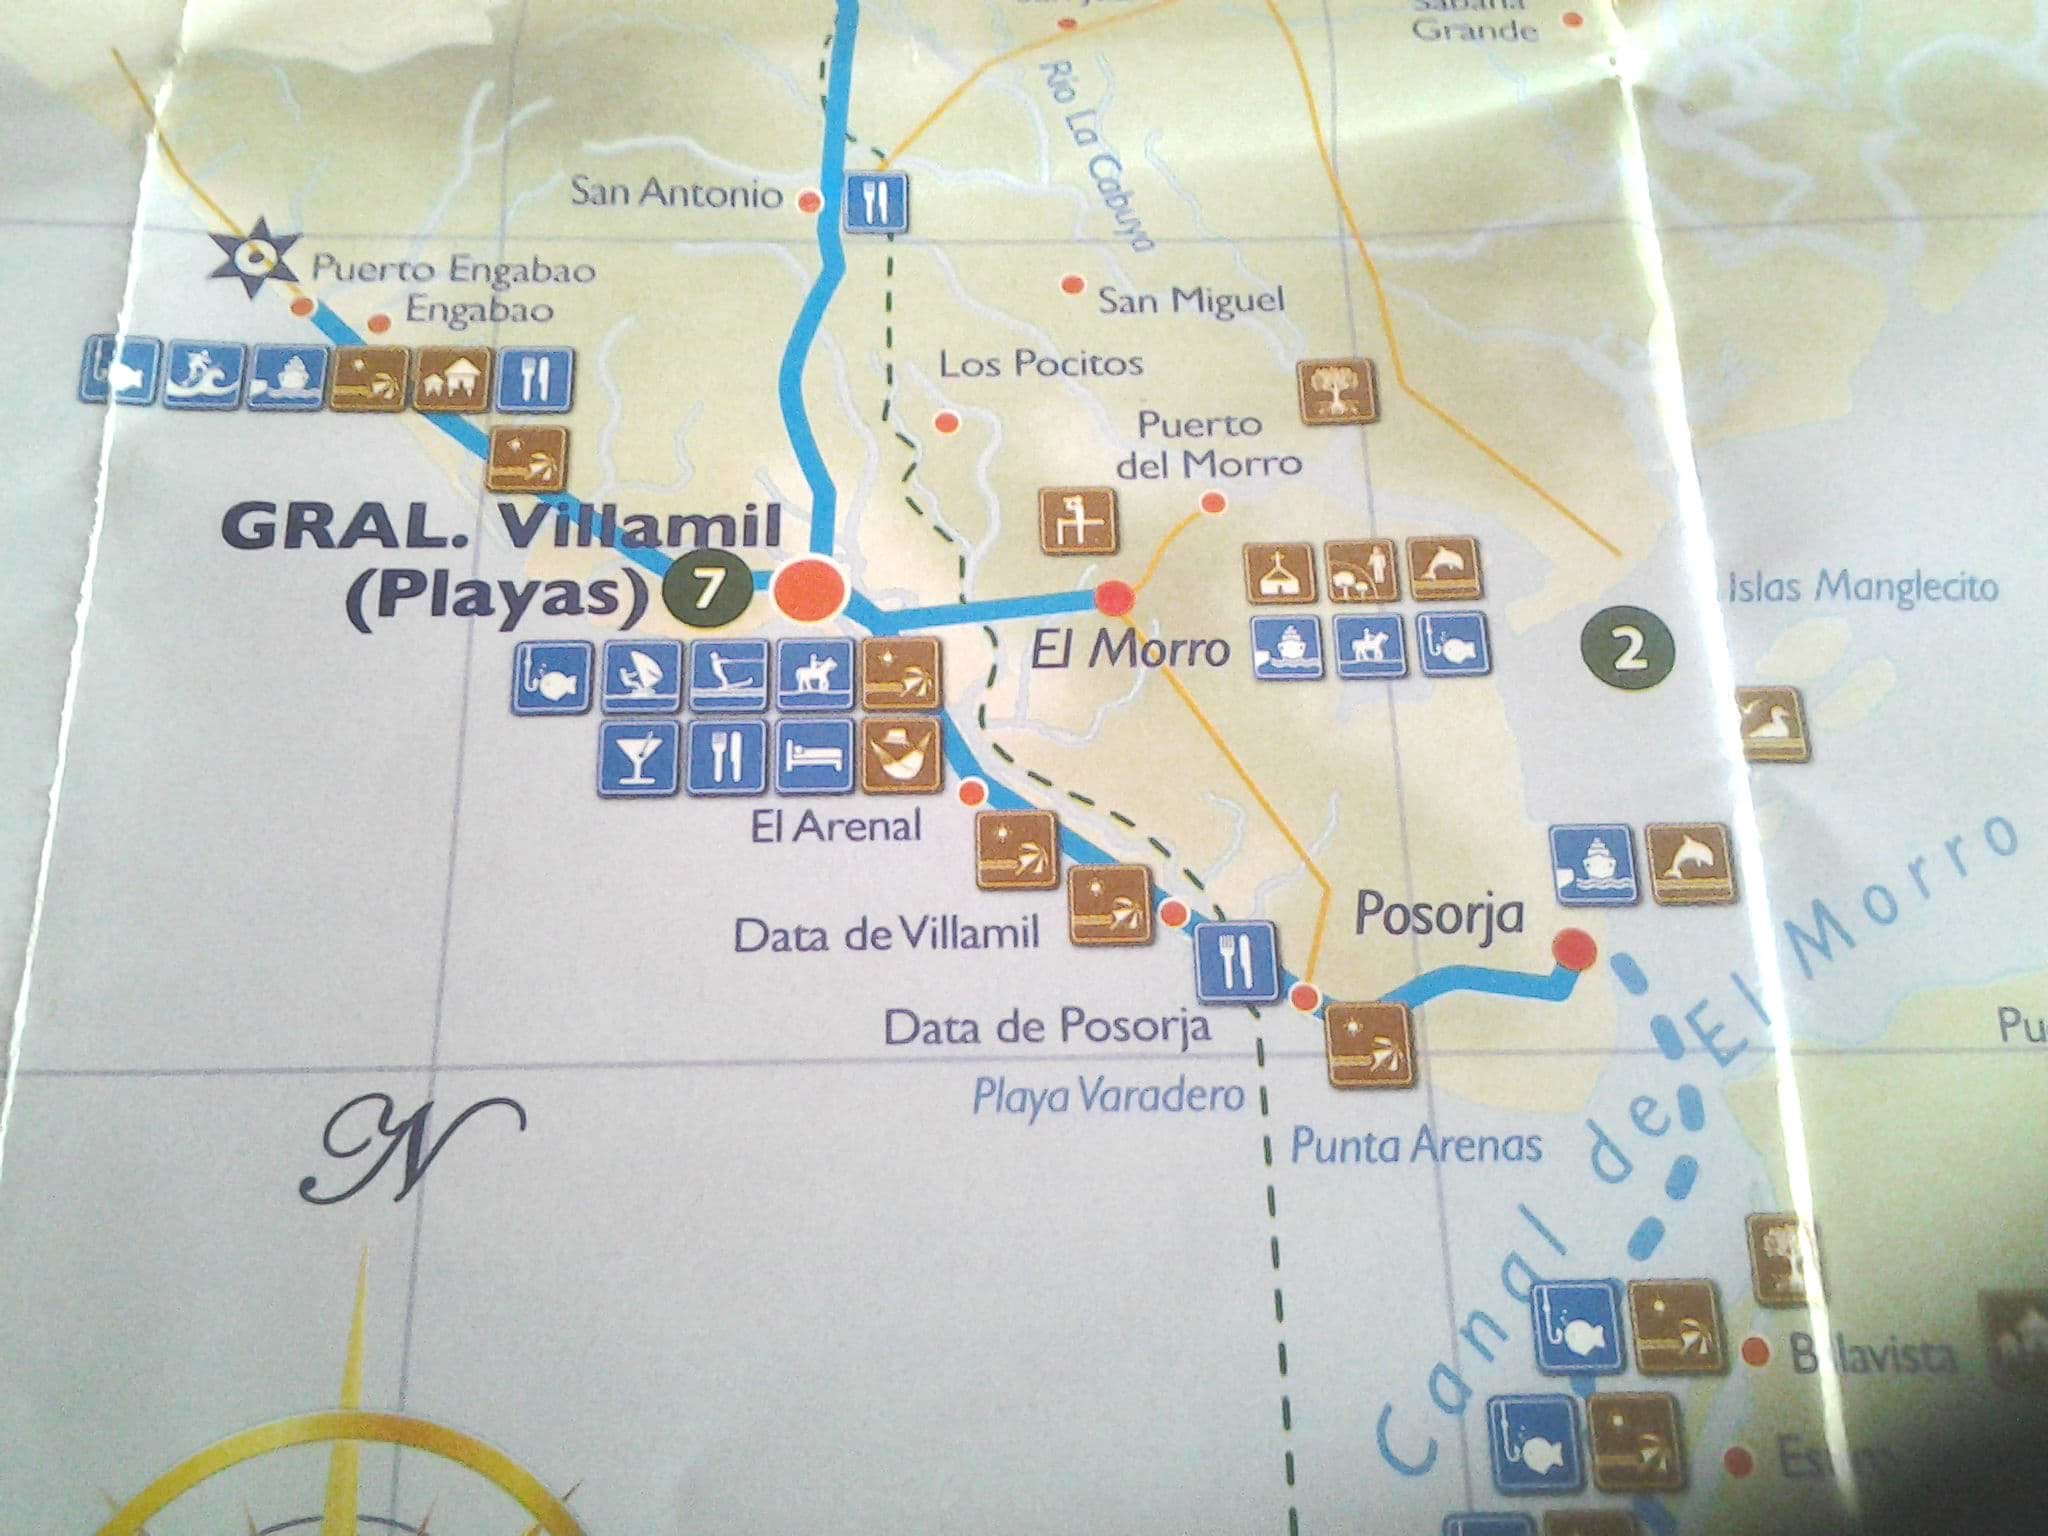 Map of coastal options just west of the city of Guayaquil.